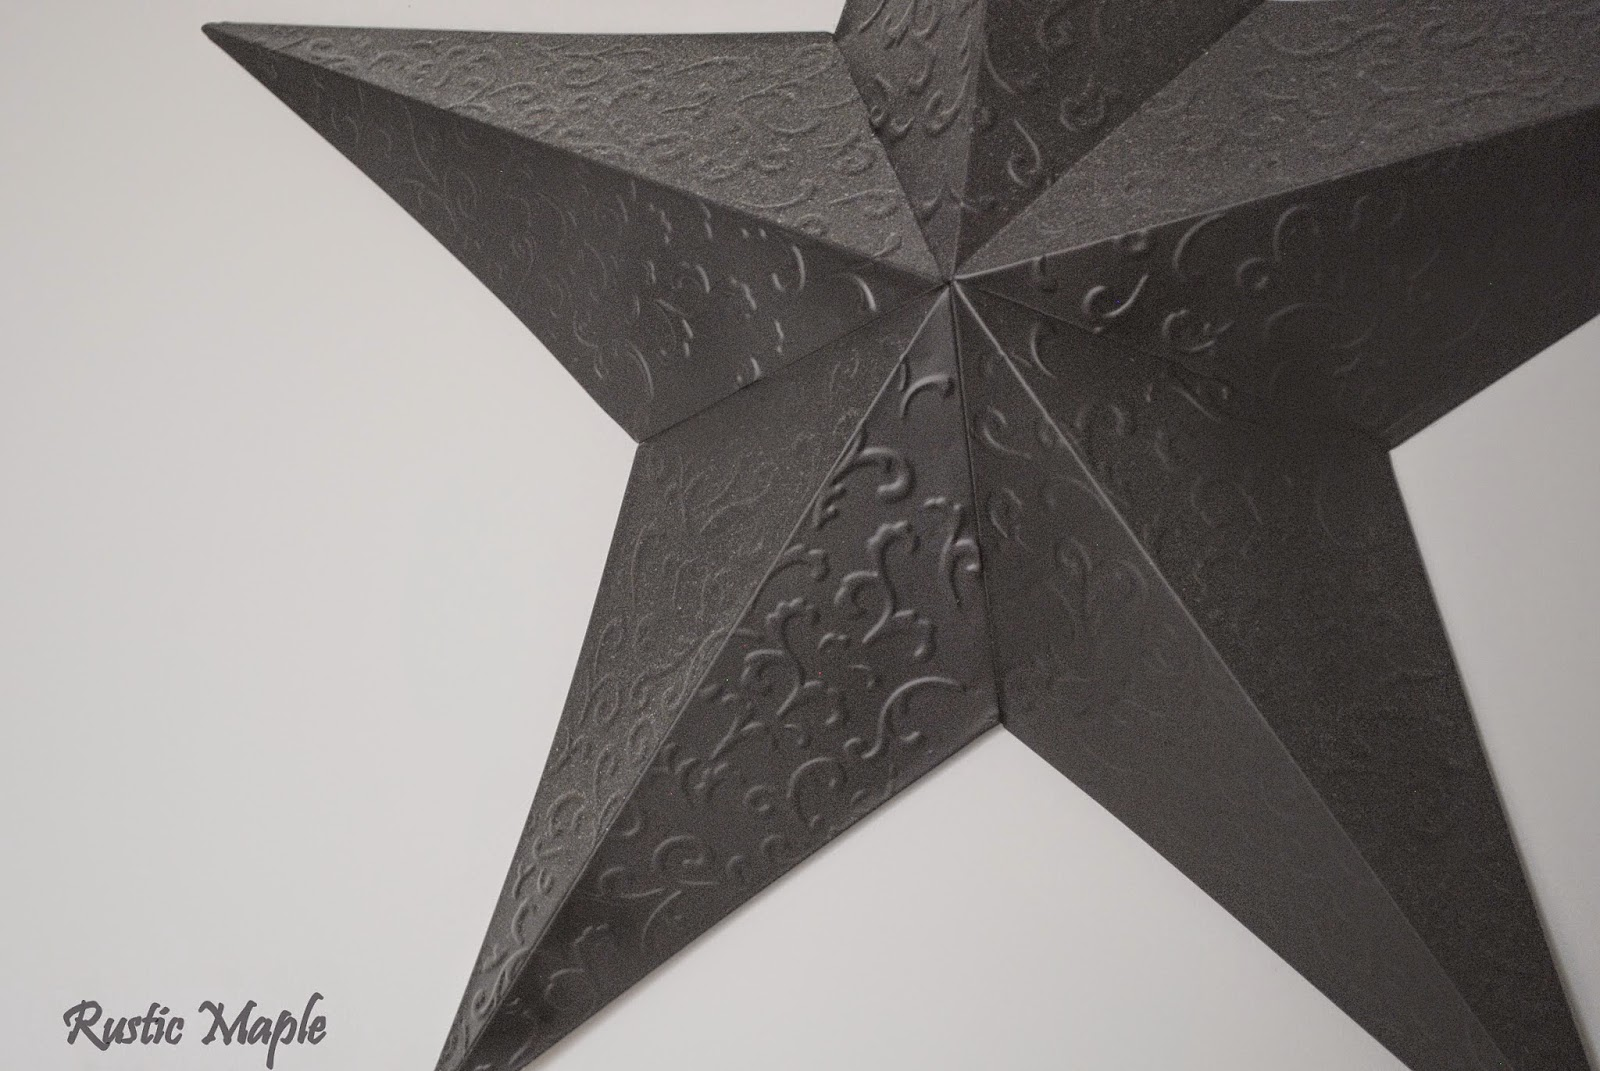 Metal Star Wall Decor Rustic Maple Ten Minutes Spray Paint And A Barn Star For Our